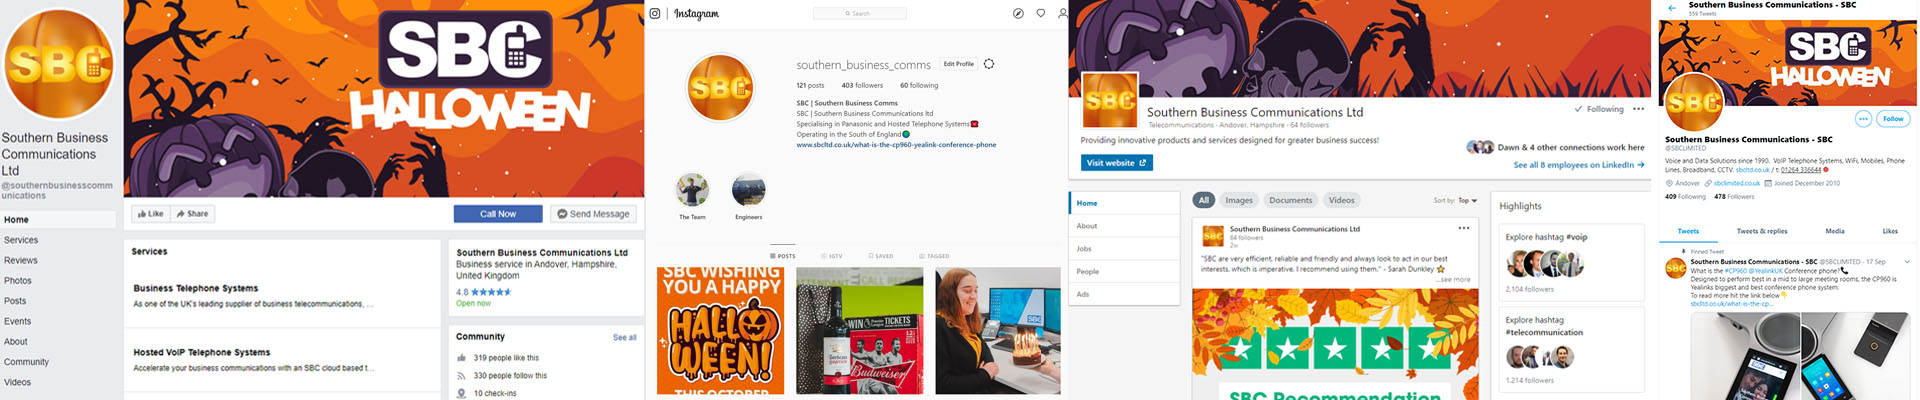 SBC Instagram Facebook LinkedIn and Twitter Halloween Re-brand